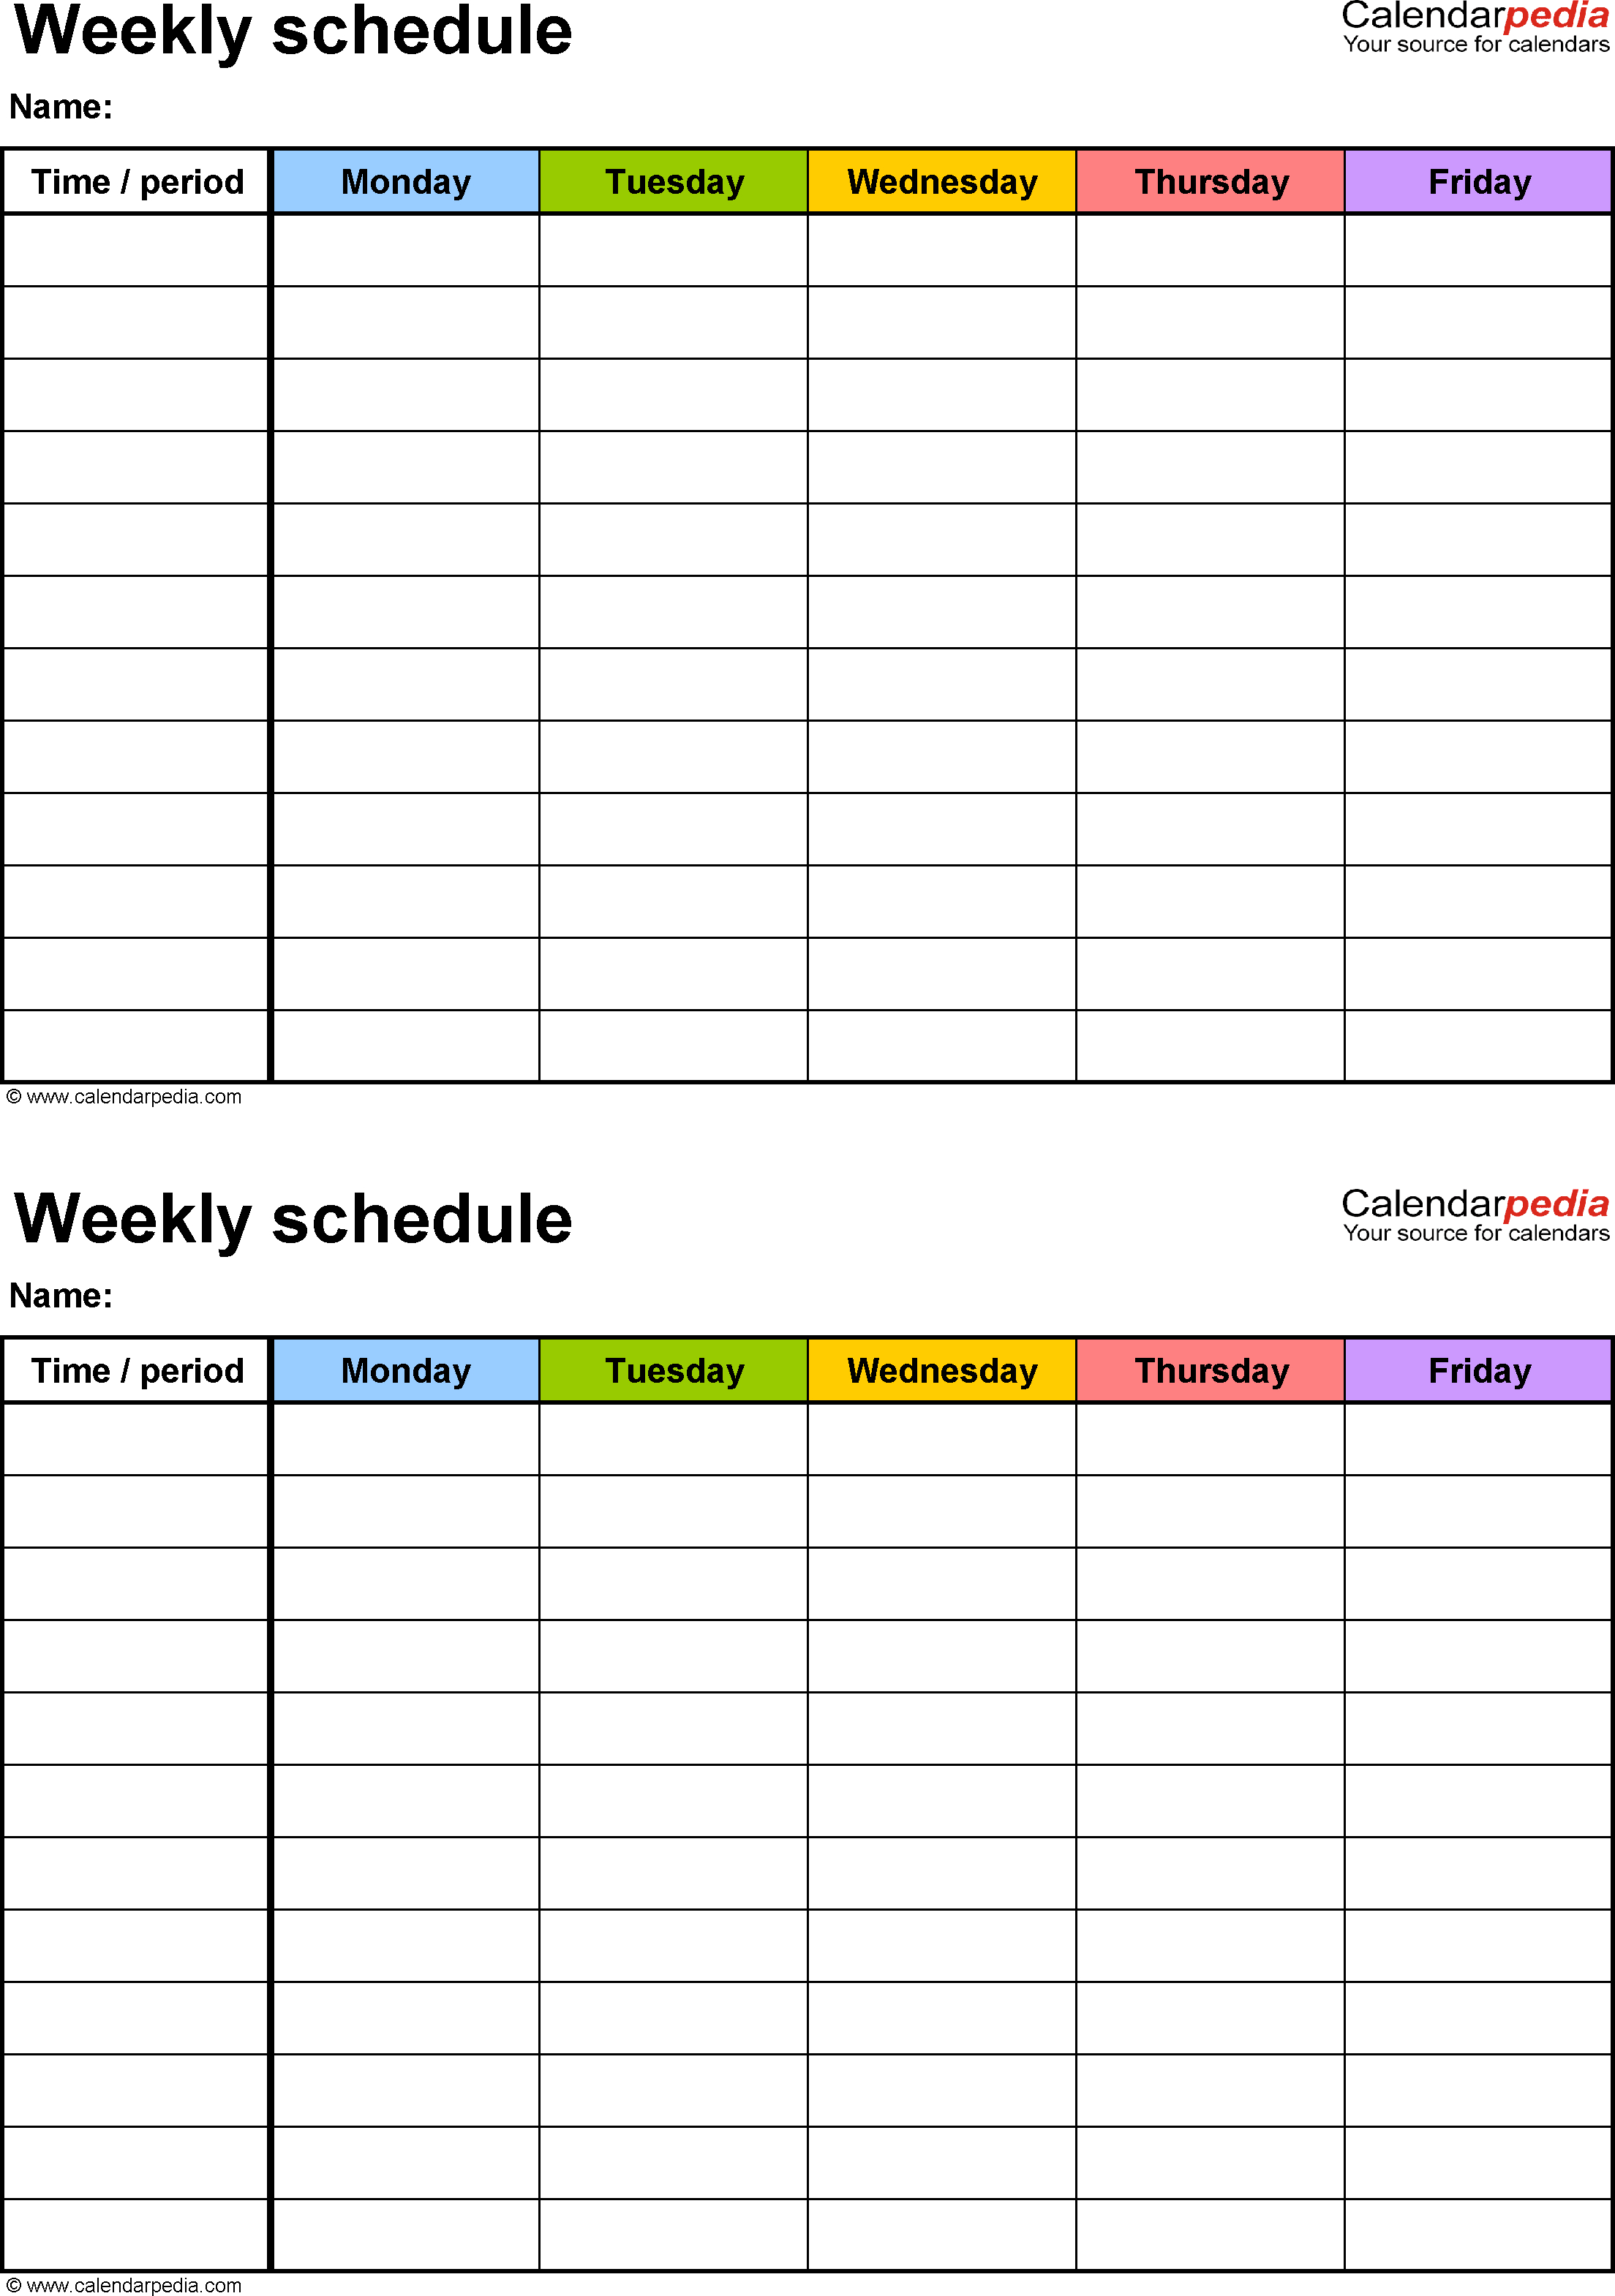 Weekly Edule Printable Free Templates For Pdf Cleaning Words